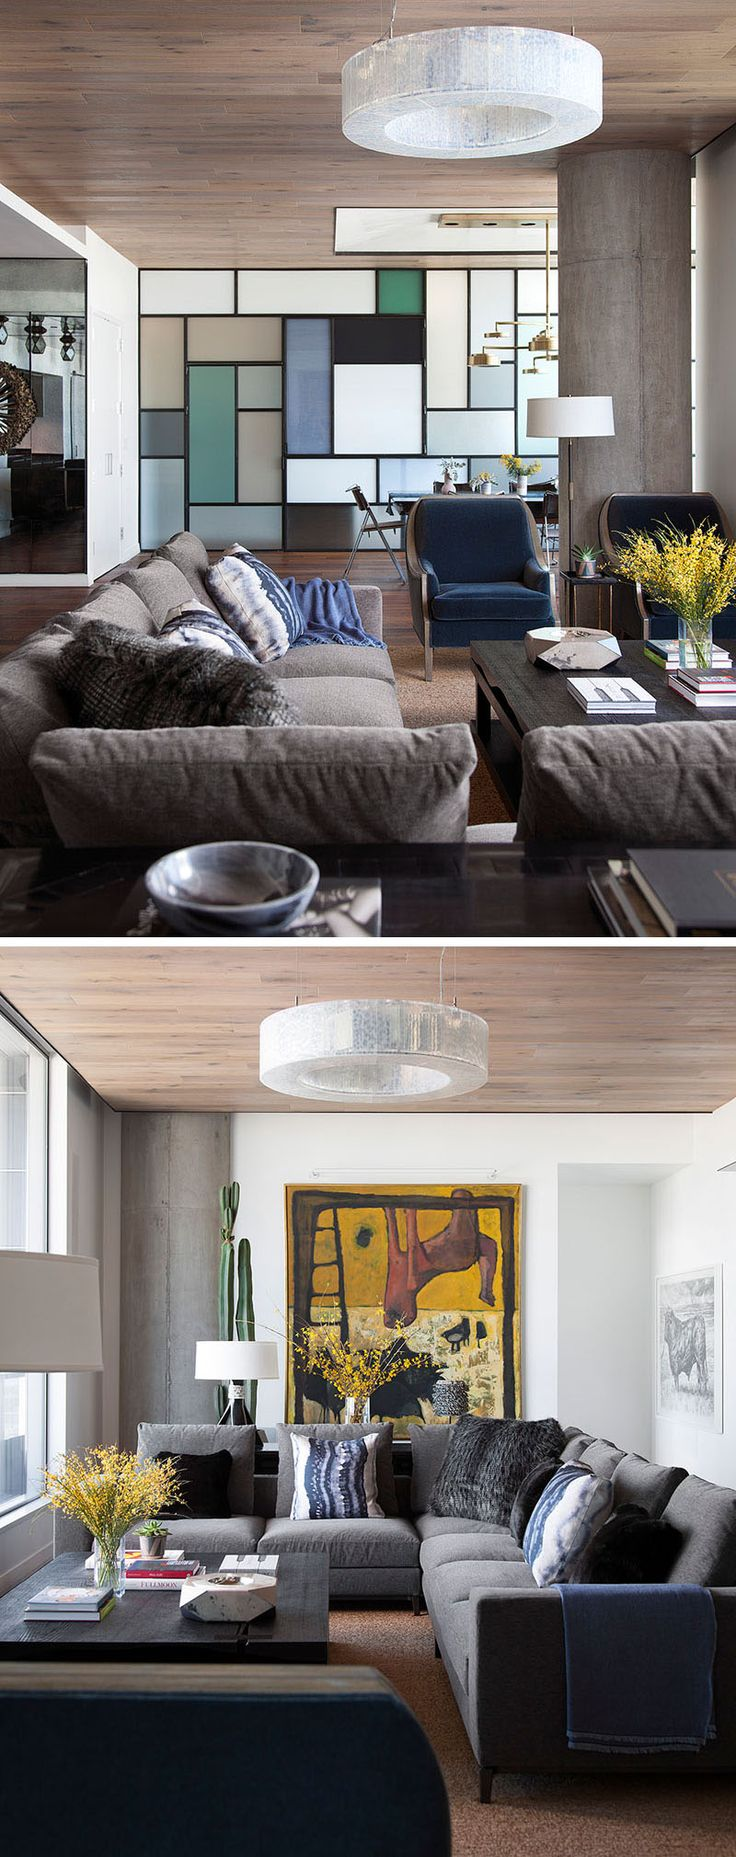 This modern living room has the furniture positioned to take advantage of the views, while the wood ceiling and floor add a sense of warmth to the apartment.